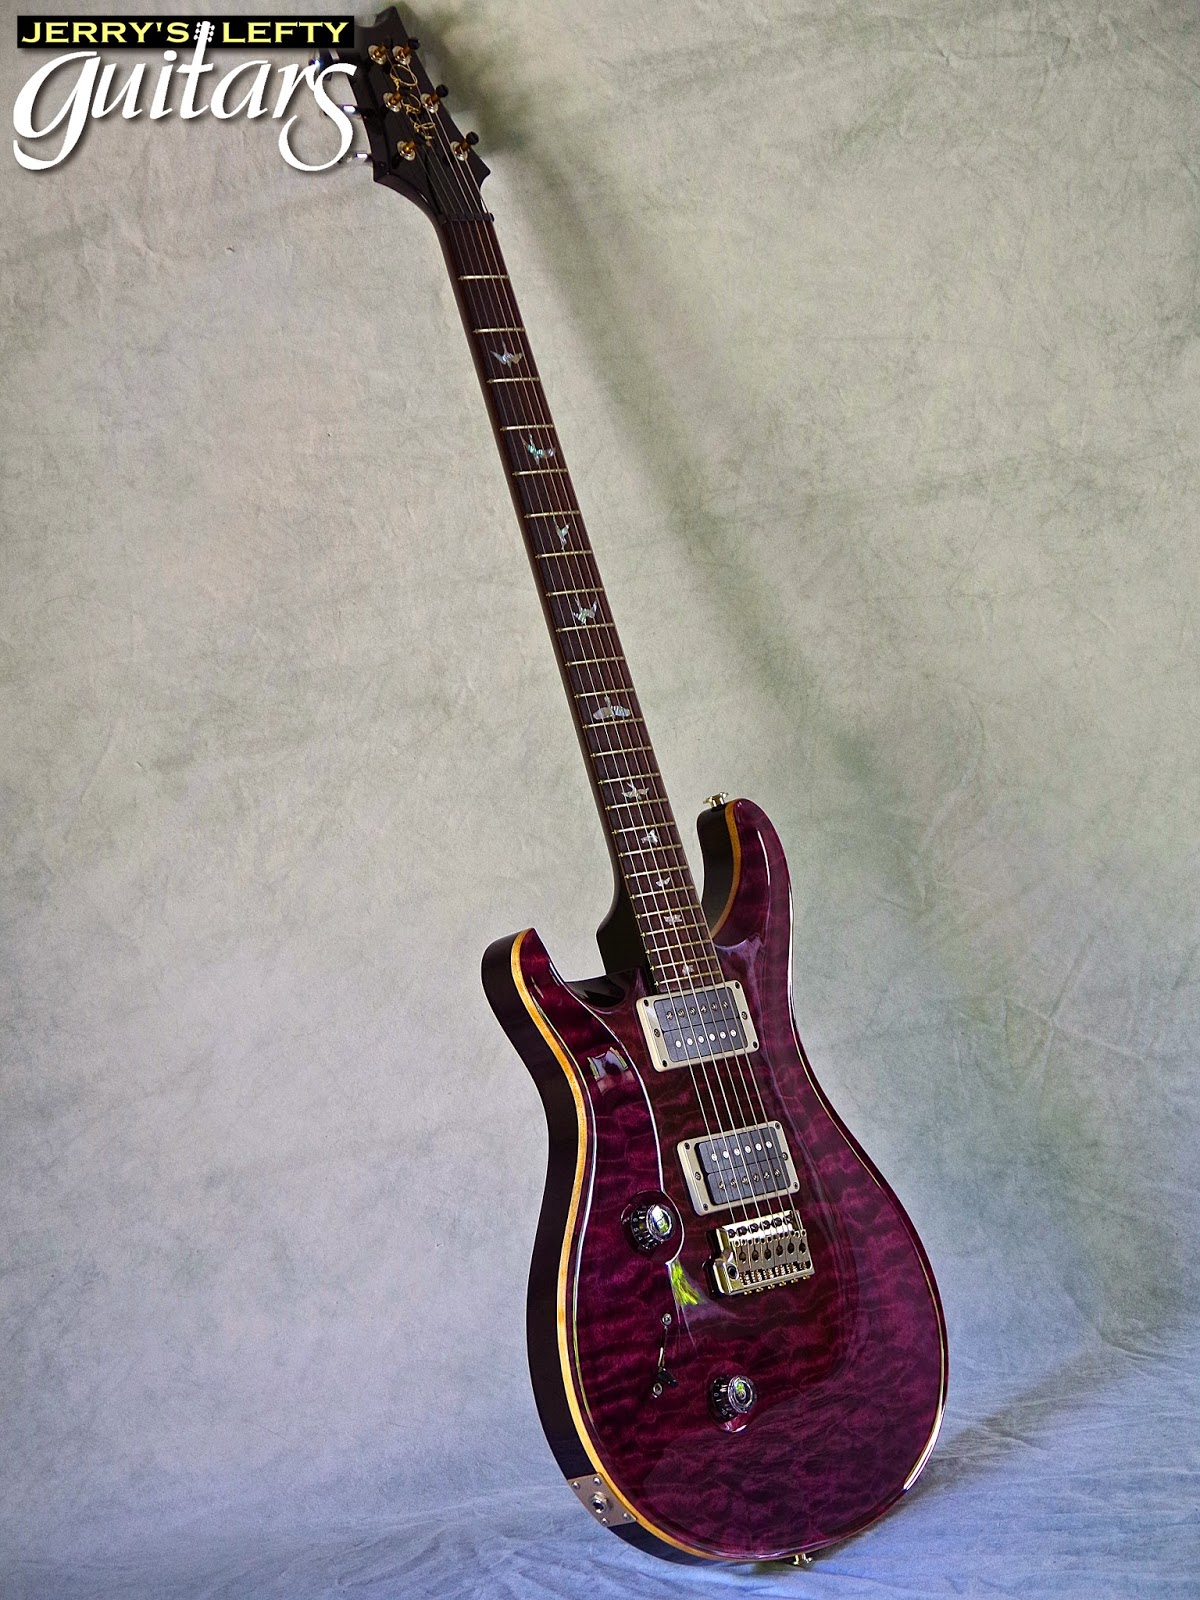 jerry 39 s lefty guitars newest guitar arrivals updated weekly used prs custom 24 10 top left. Black Bedroom Furniture Sets. Home Design Ideas